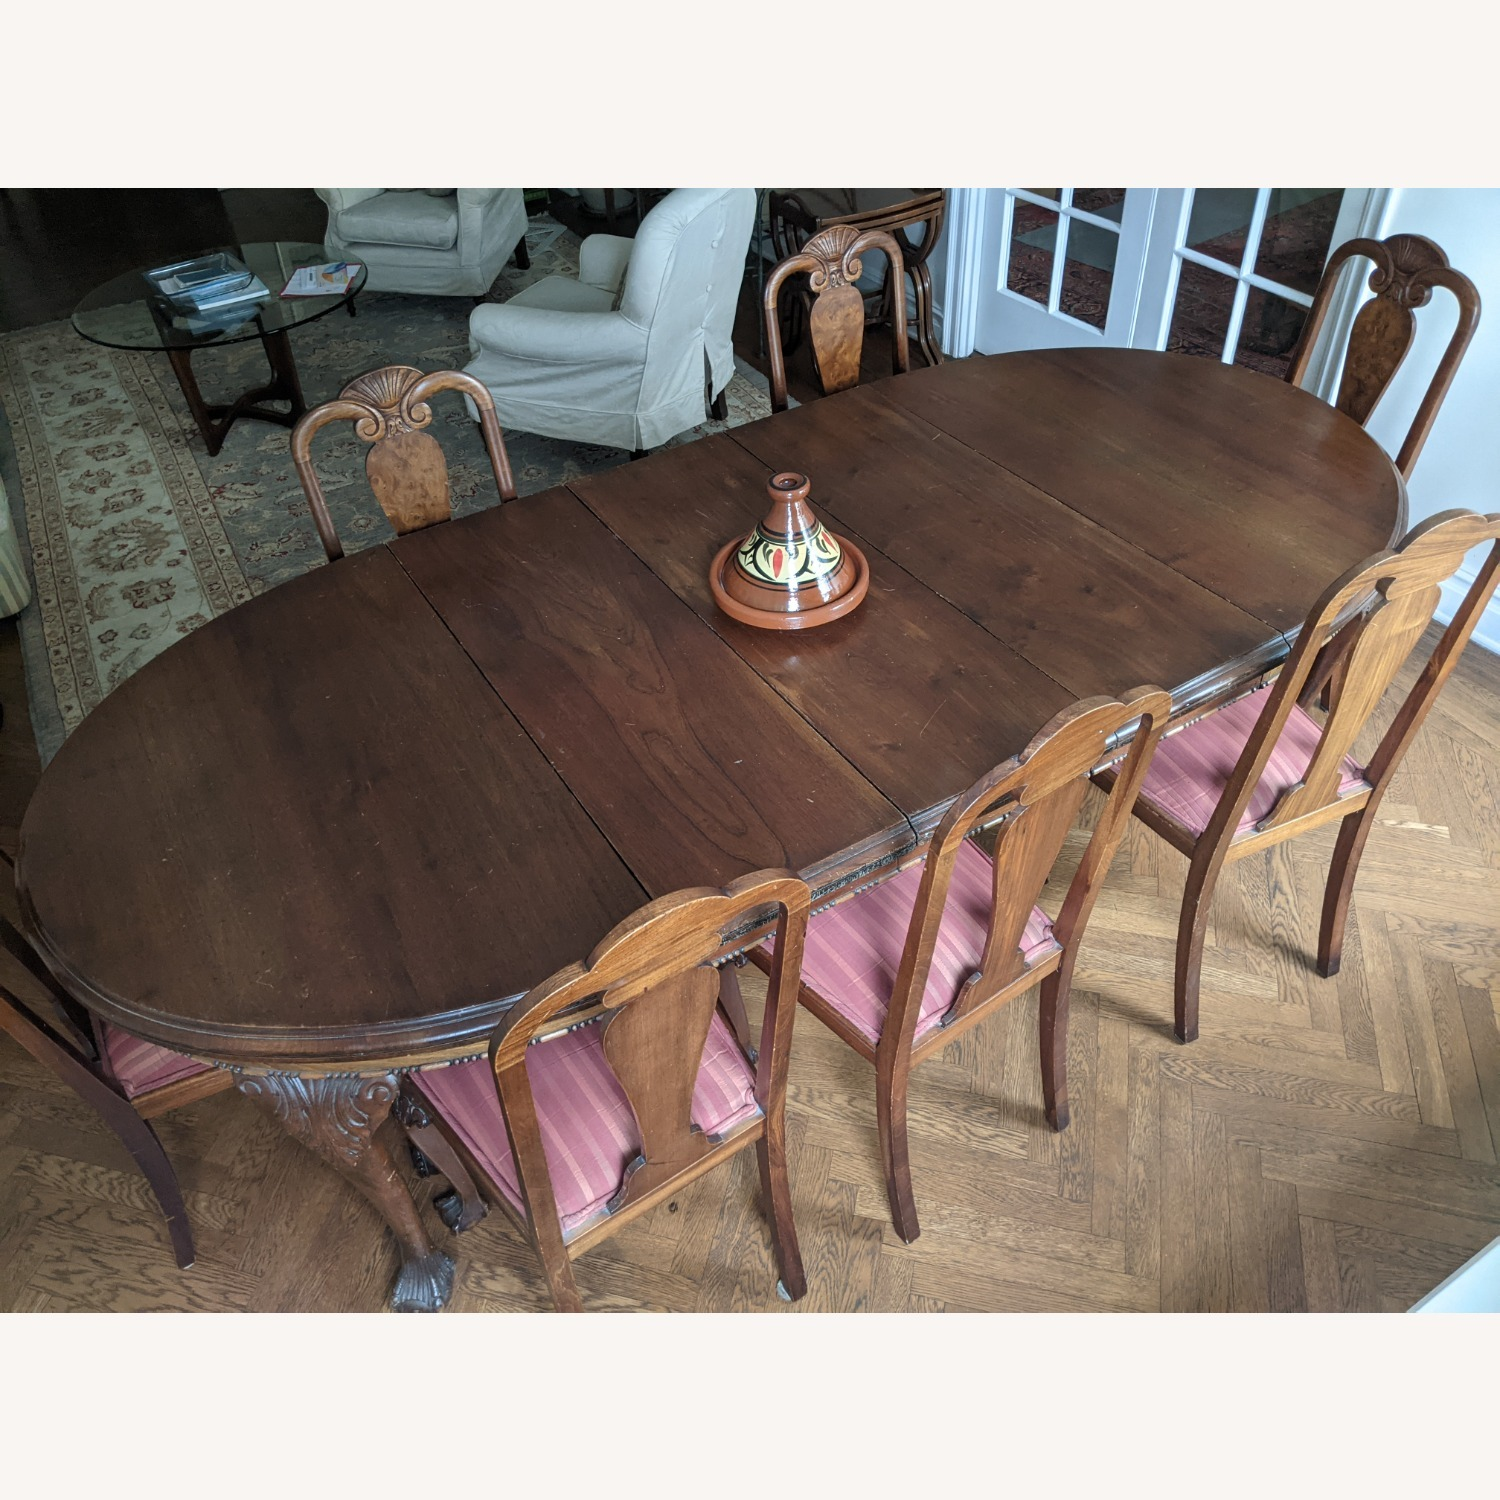 Early 20th Century Walnut Dining Table + Chairs - image-2